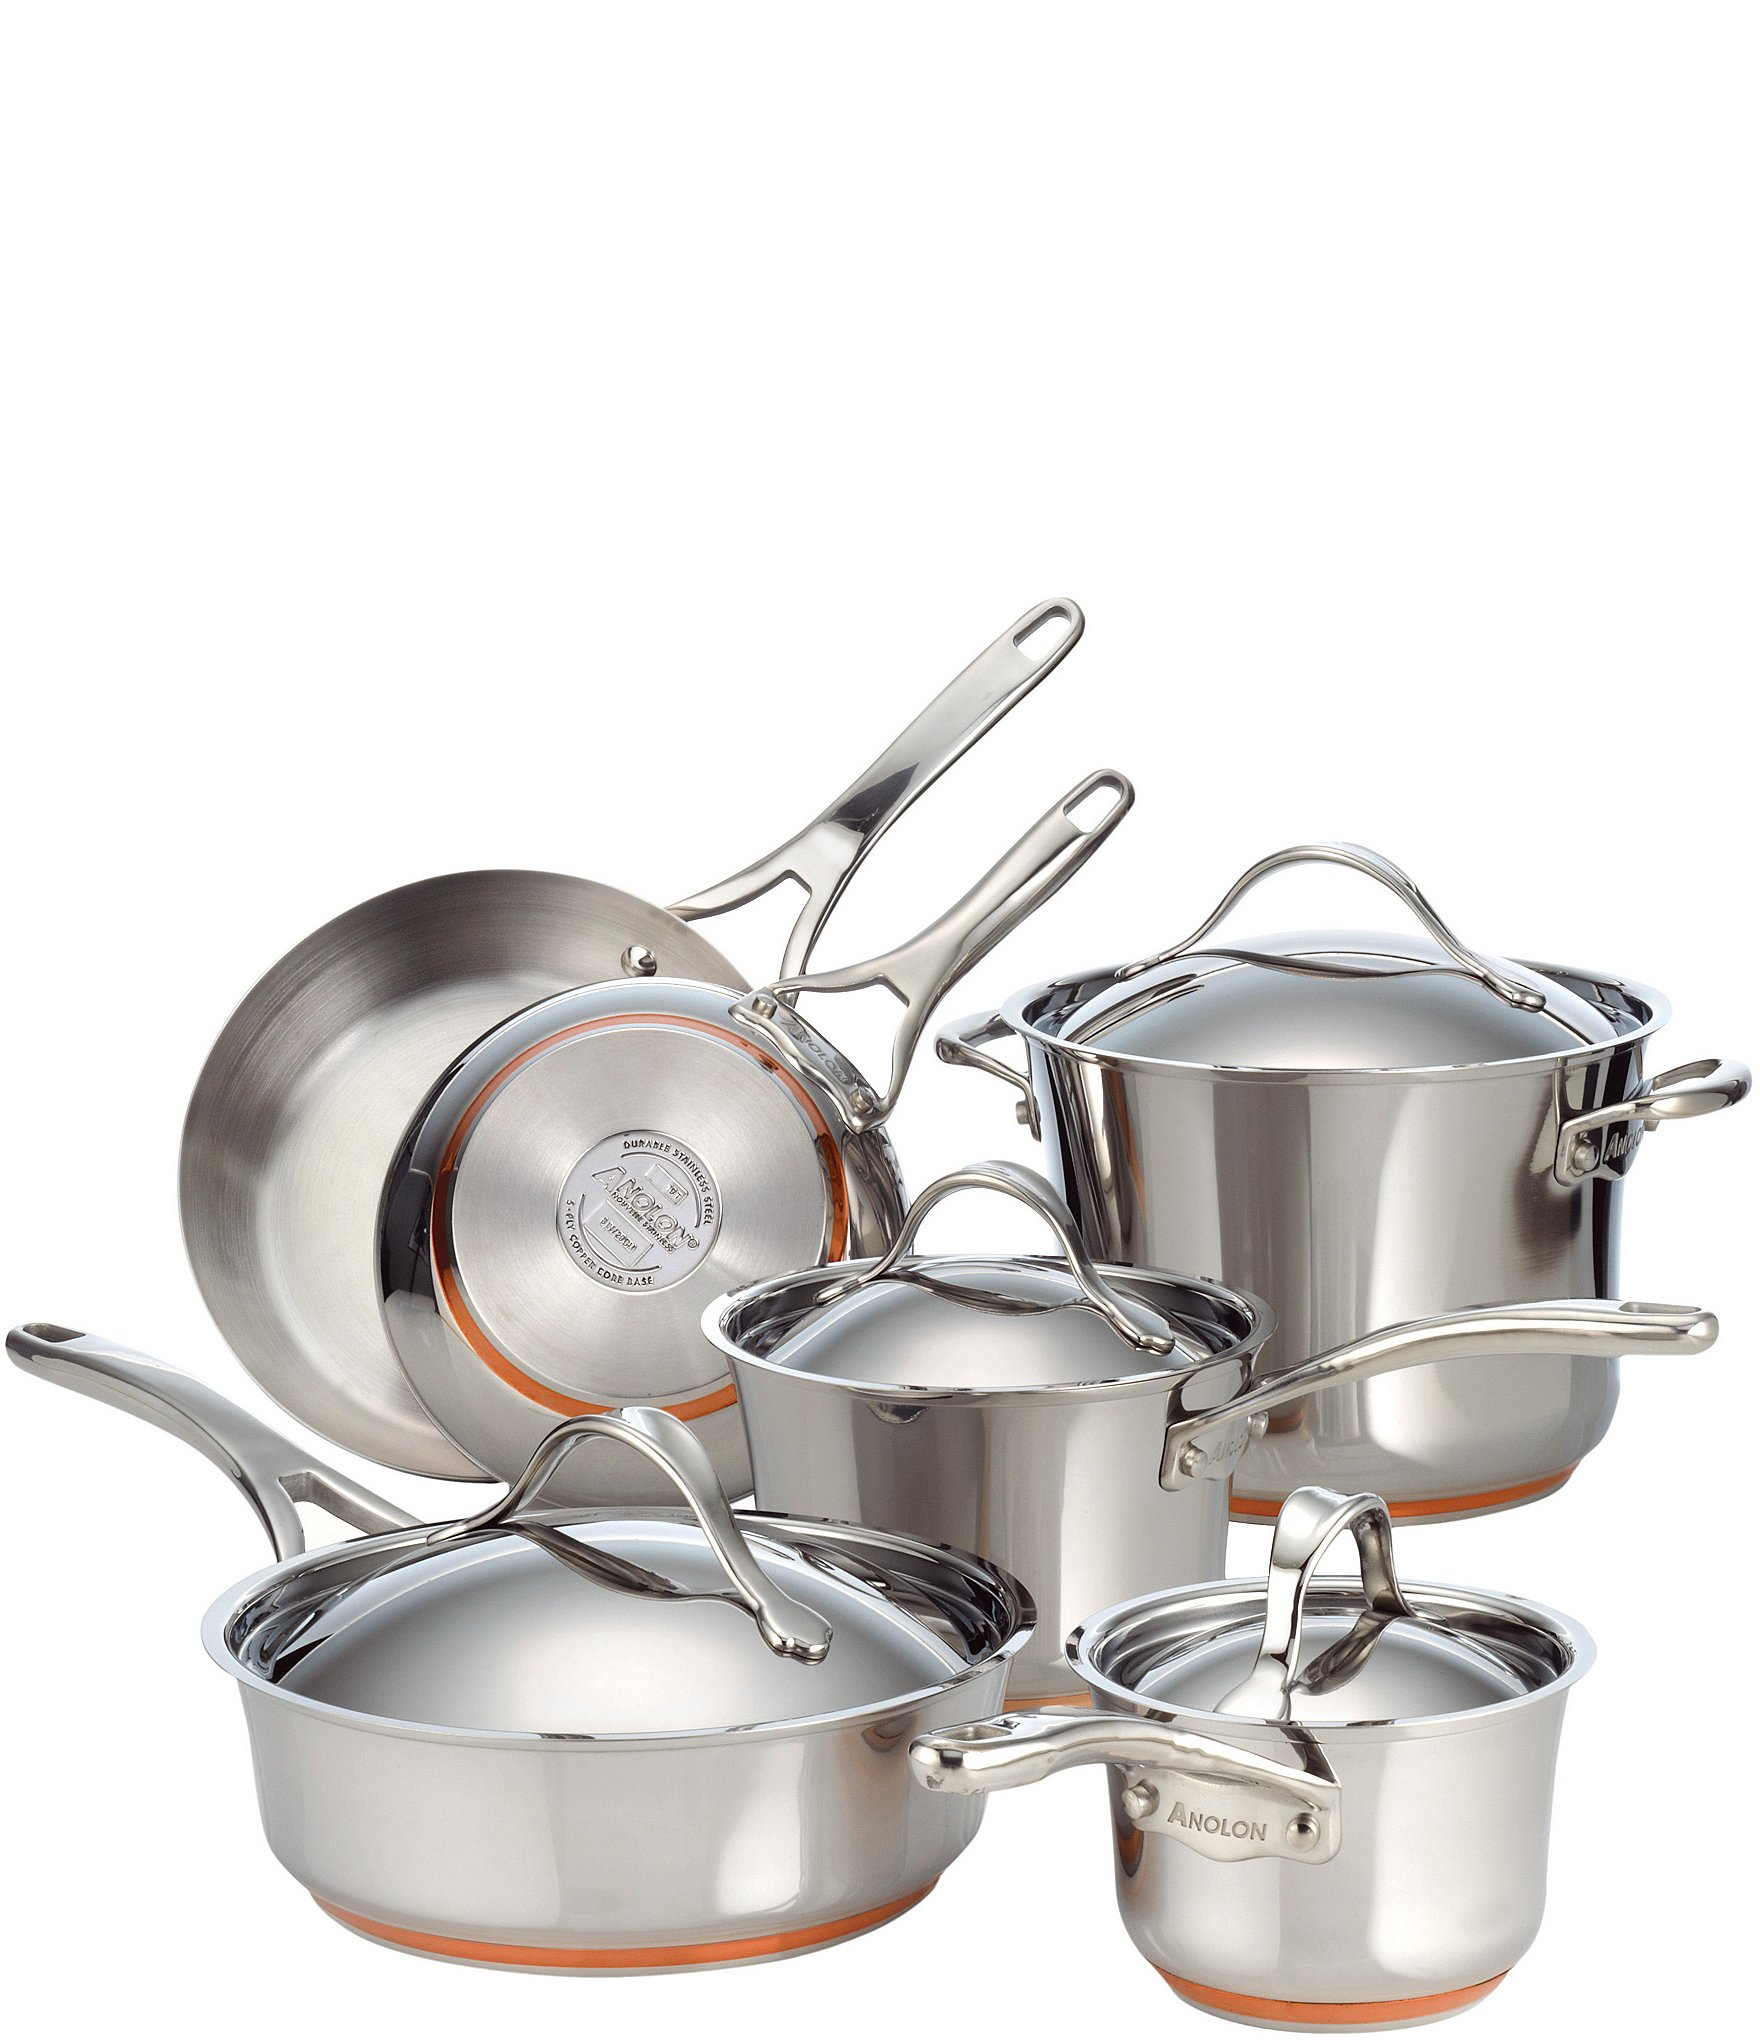 Anolon Nouvelle Copper Amp Stainless Steel 10 Piece Cookware